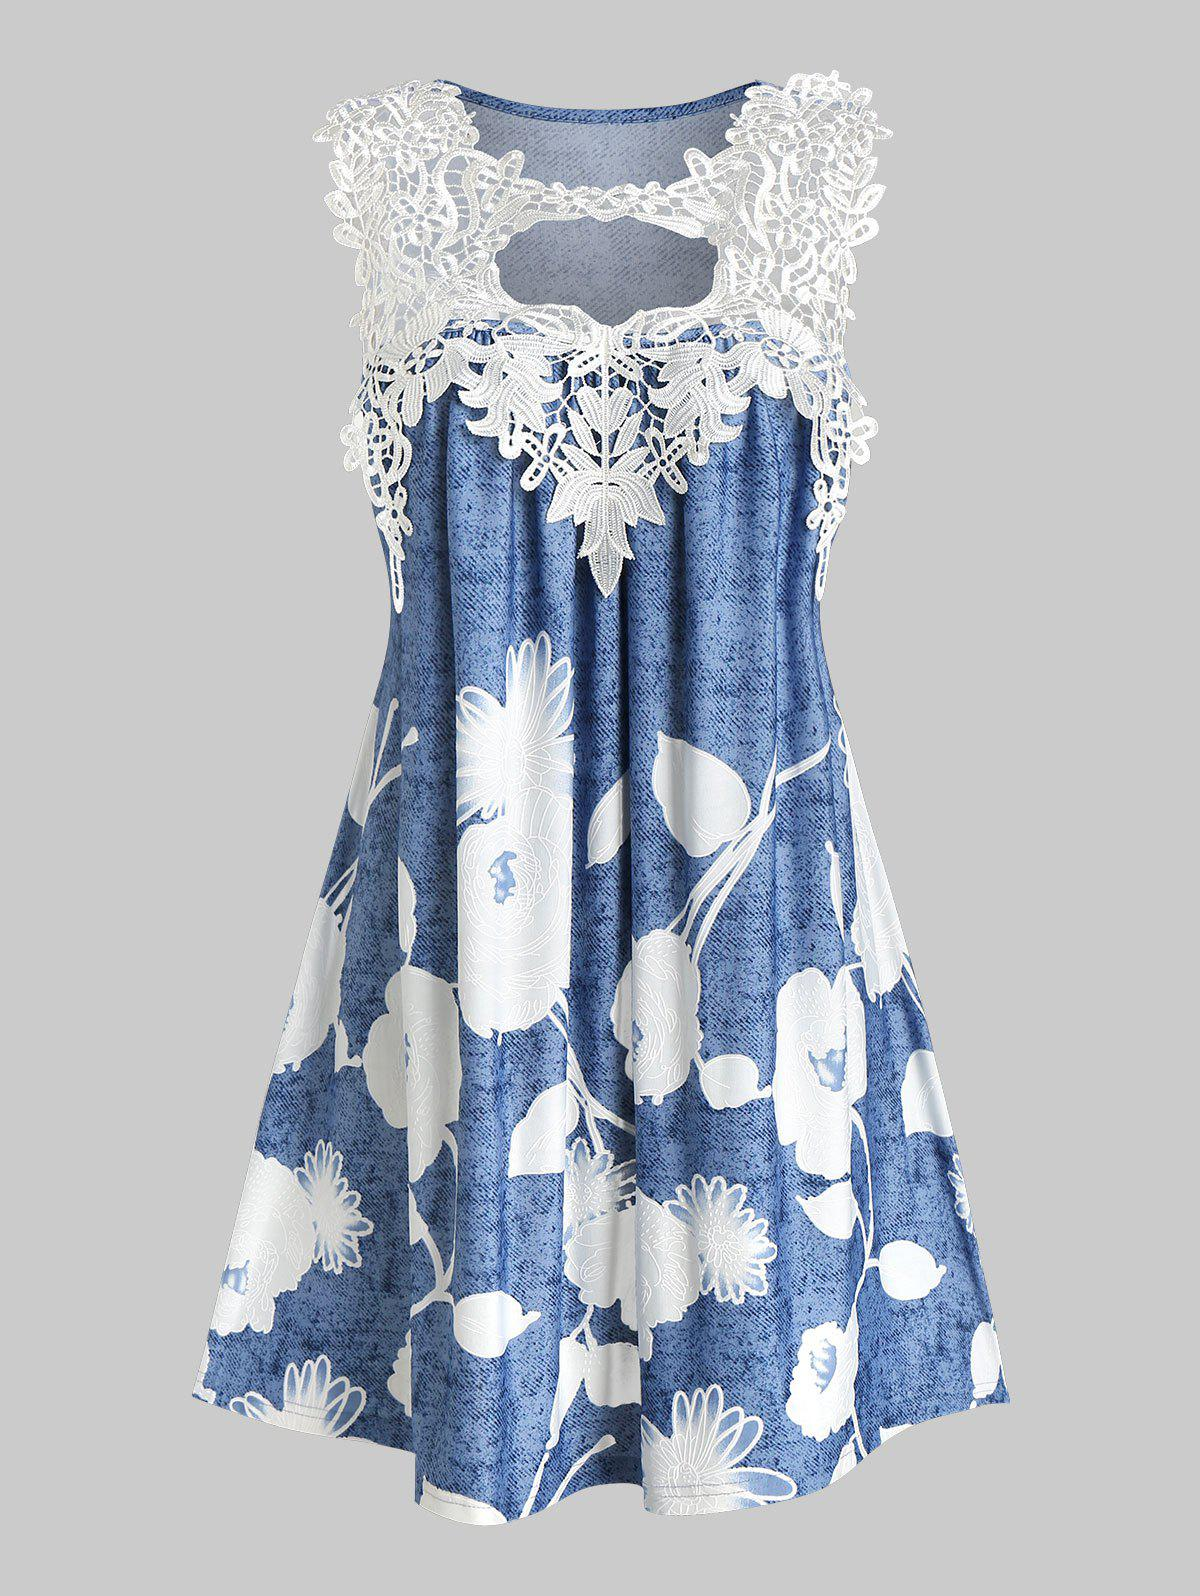 Flower Print Lace Insert Sleeveless Dress - DEEP SKY BLUE L